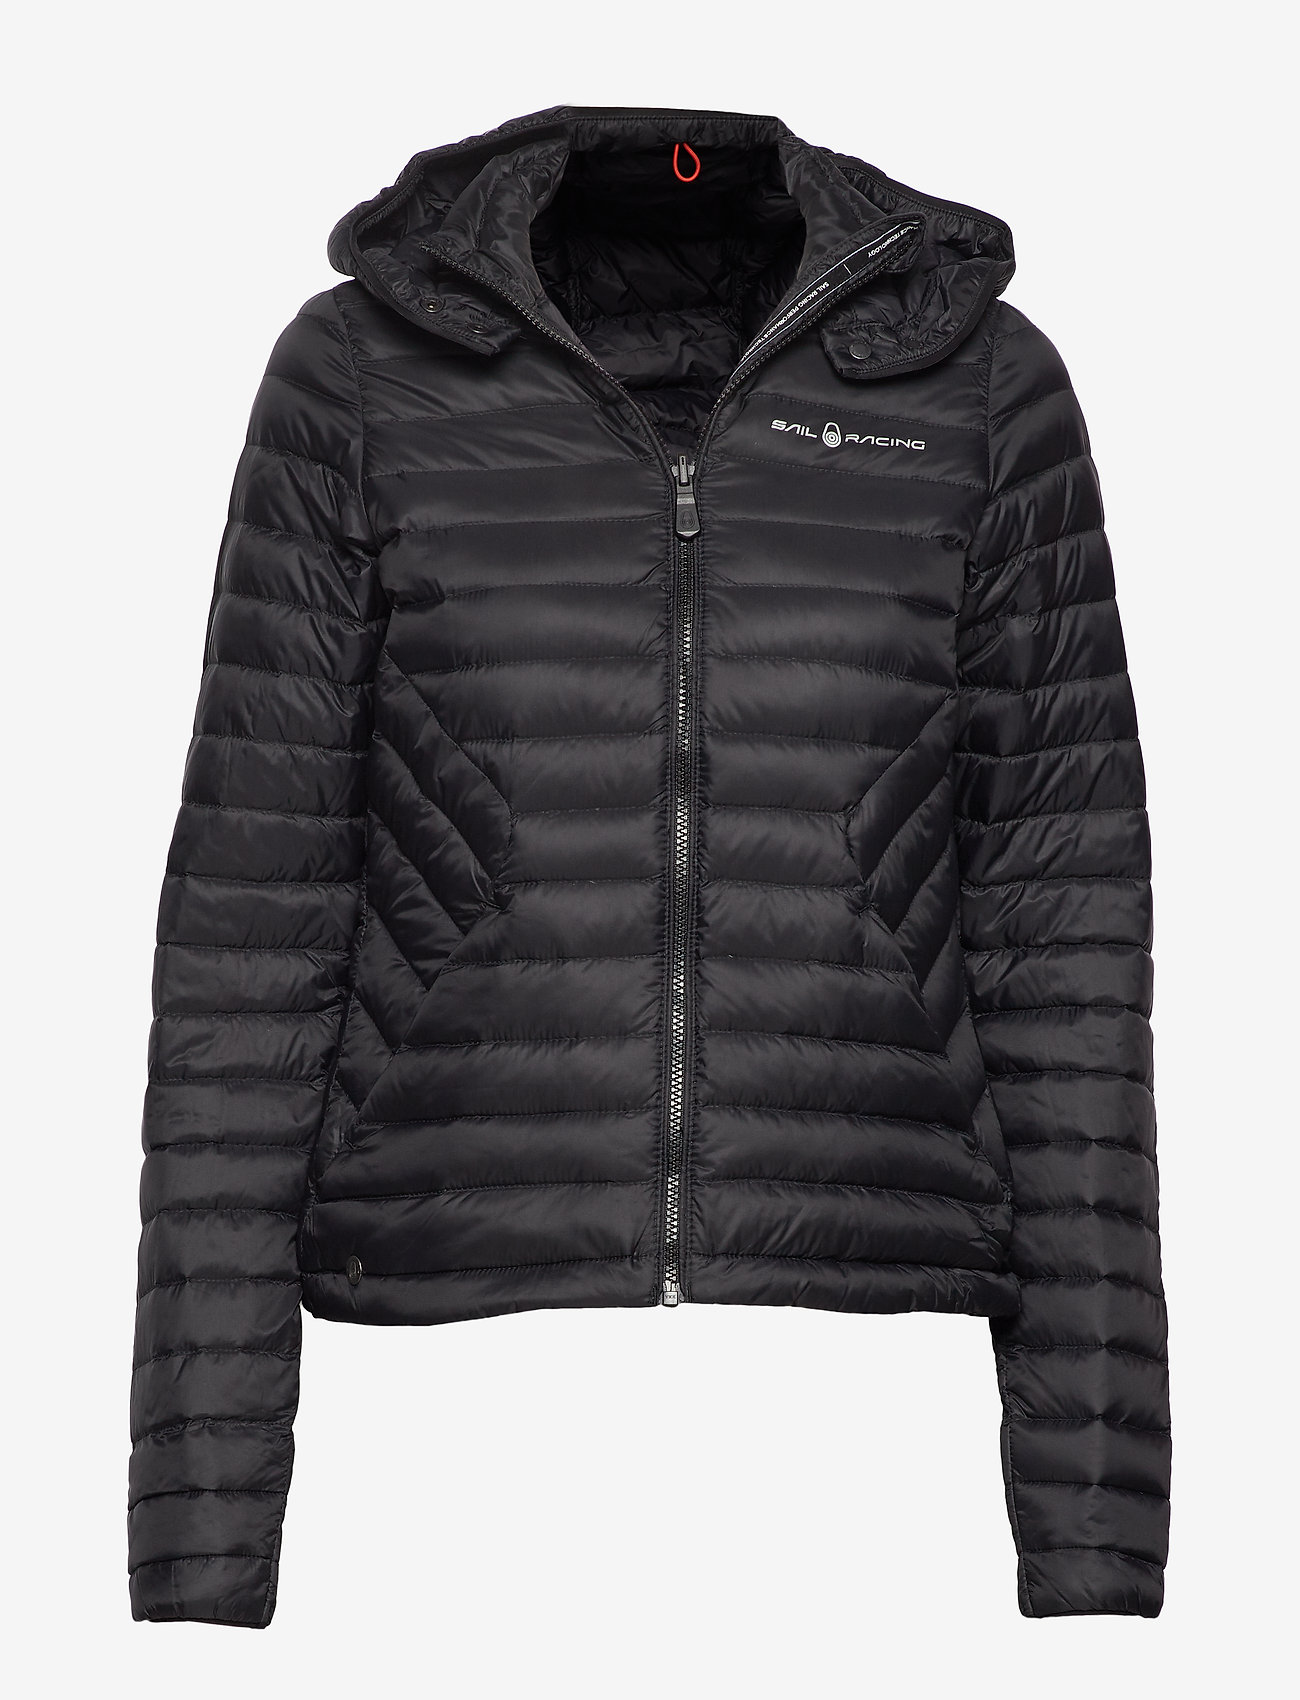 Sail Racing - W LINK DOWN JACKET - sports jackets - carbon - 0